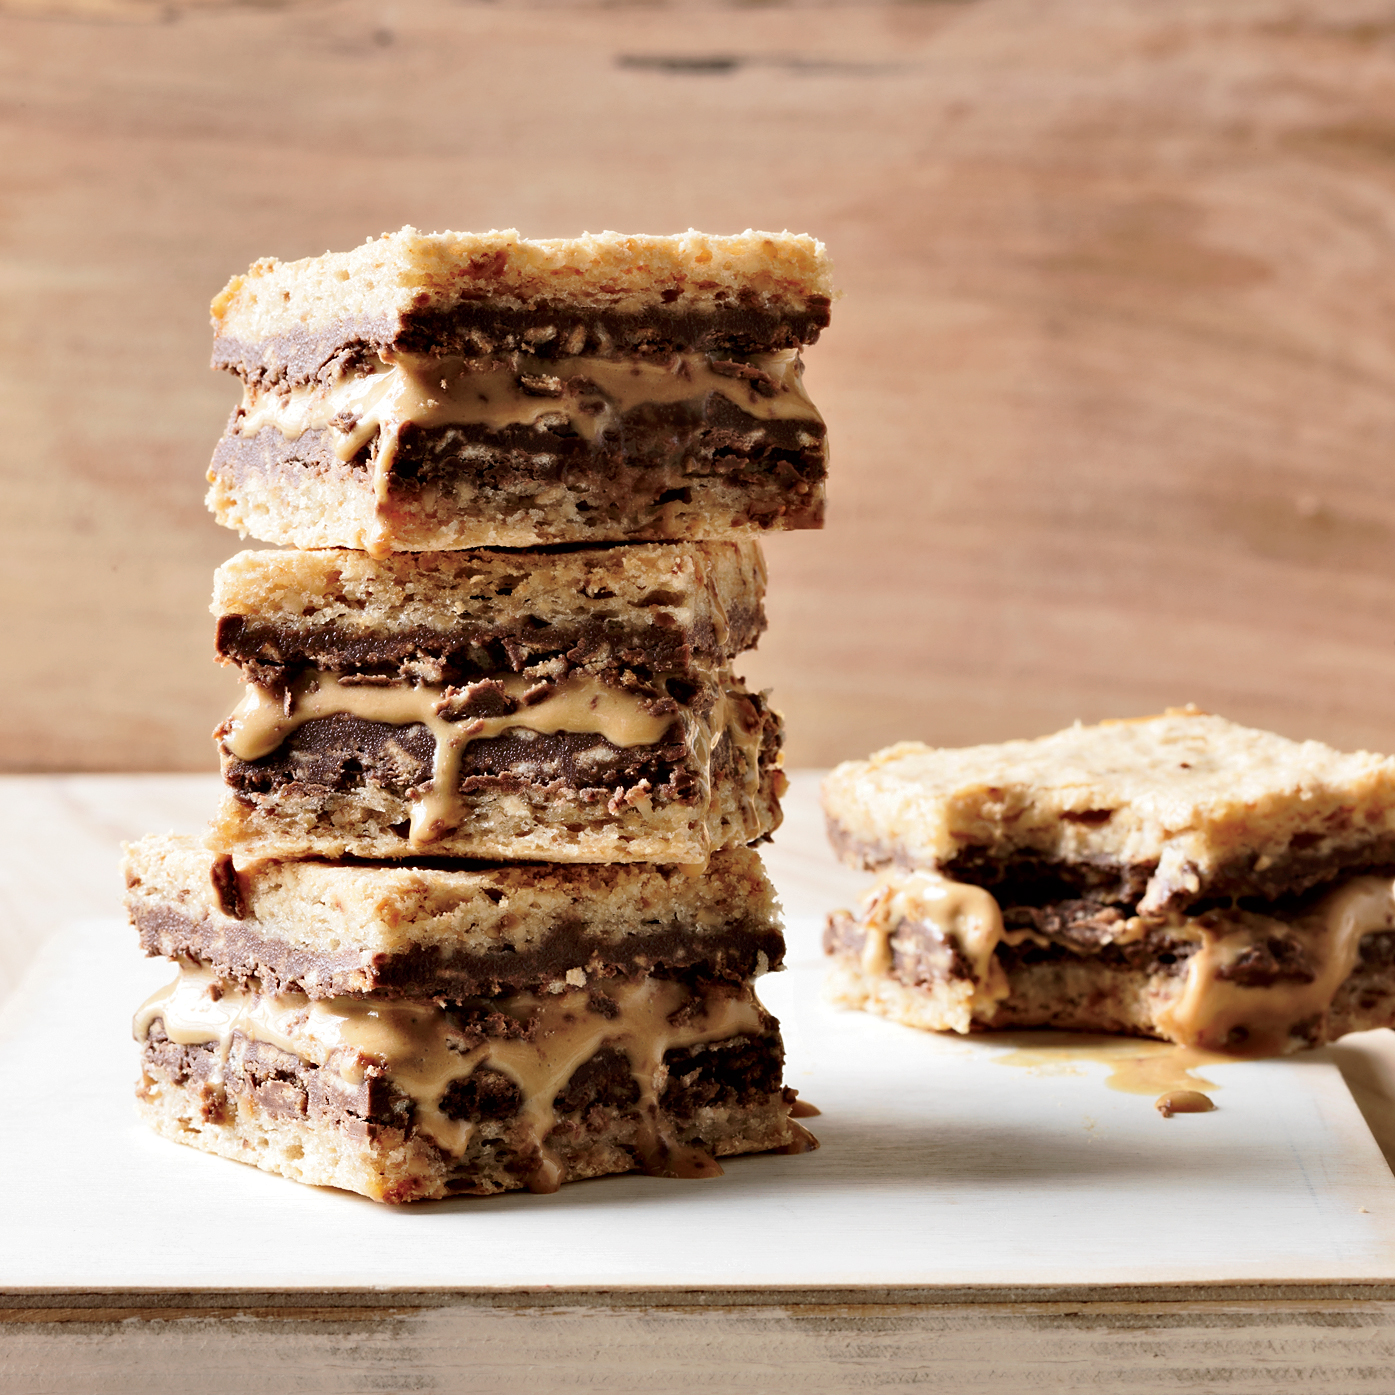 201110-r-hazelnut-nutella-and-caramel-ice-cream-sandwiches-alain-ducasse.jpg